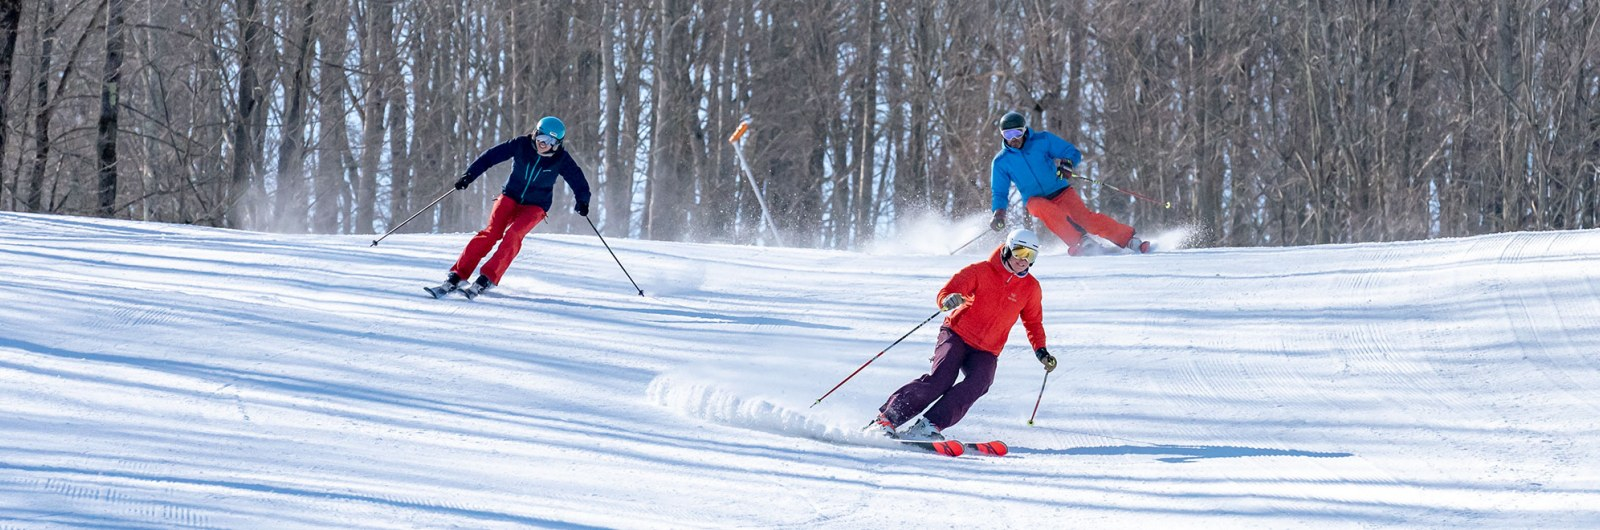 Skiers carving in the snow